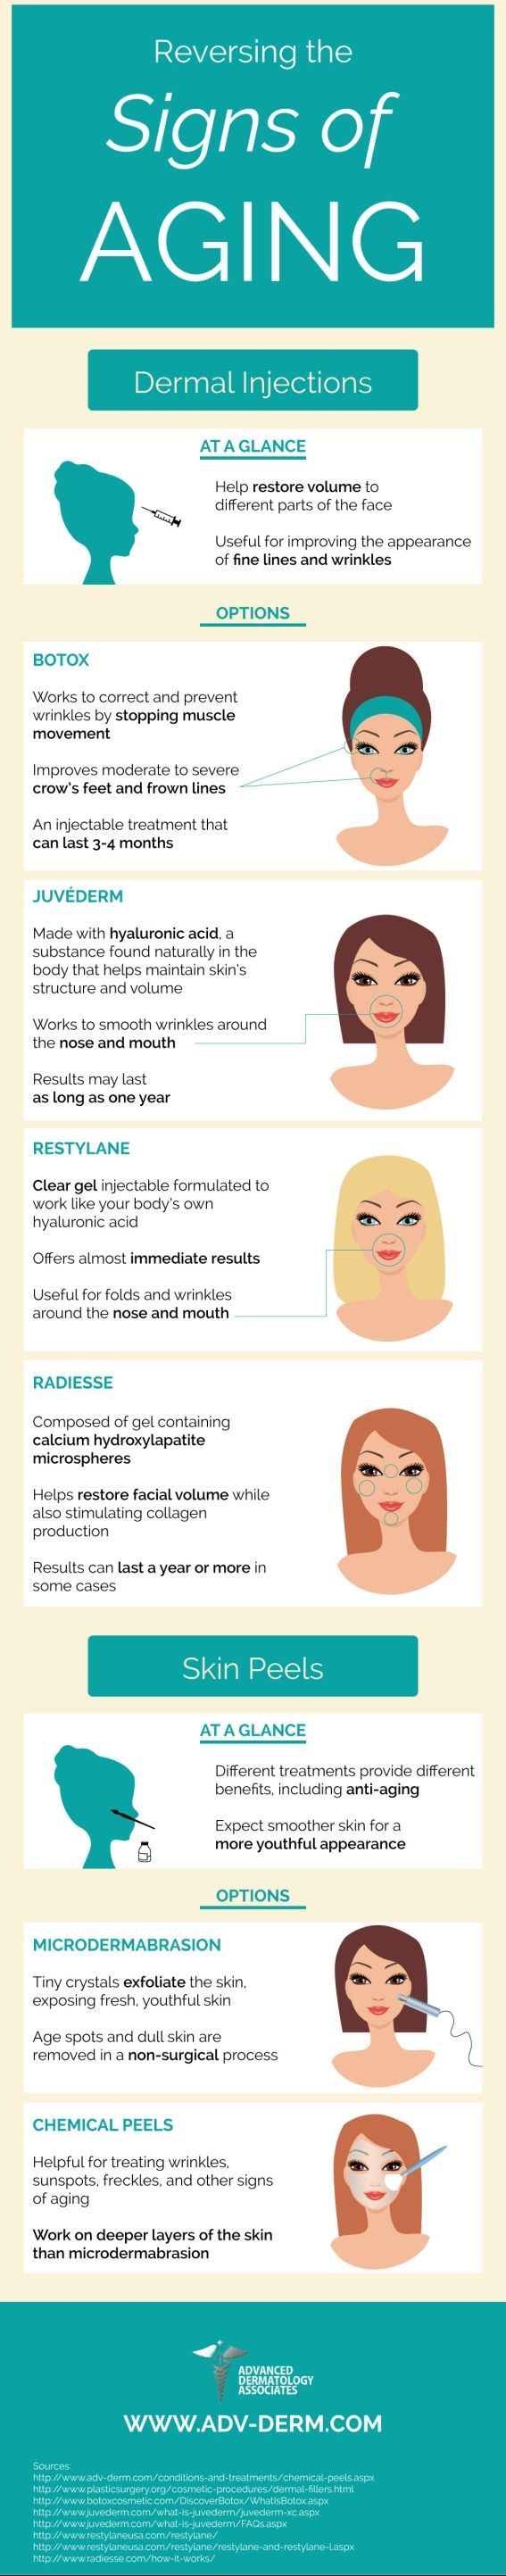 Wrinkels & fillers to correct them. #infographic #wellnesskliniek